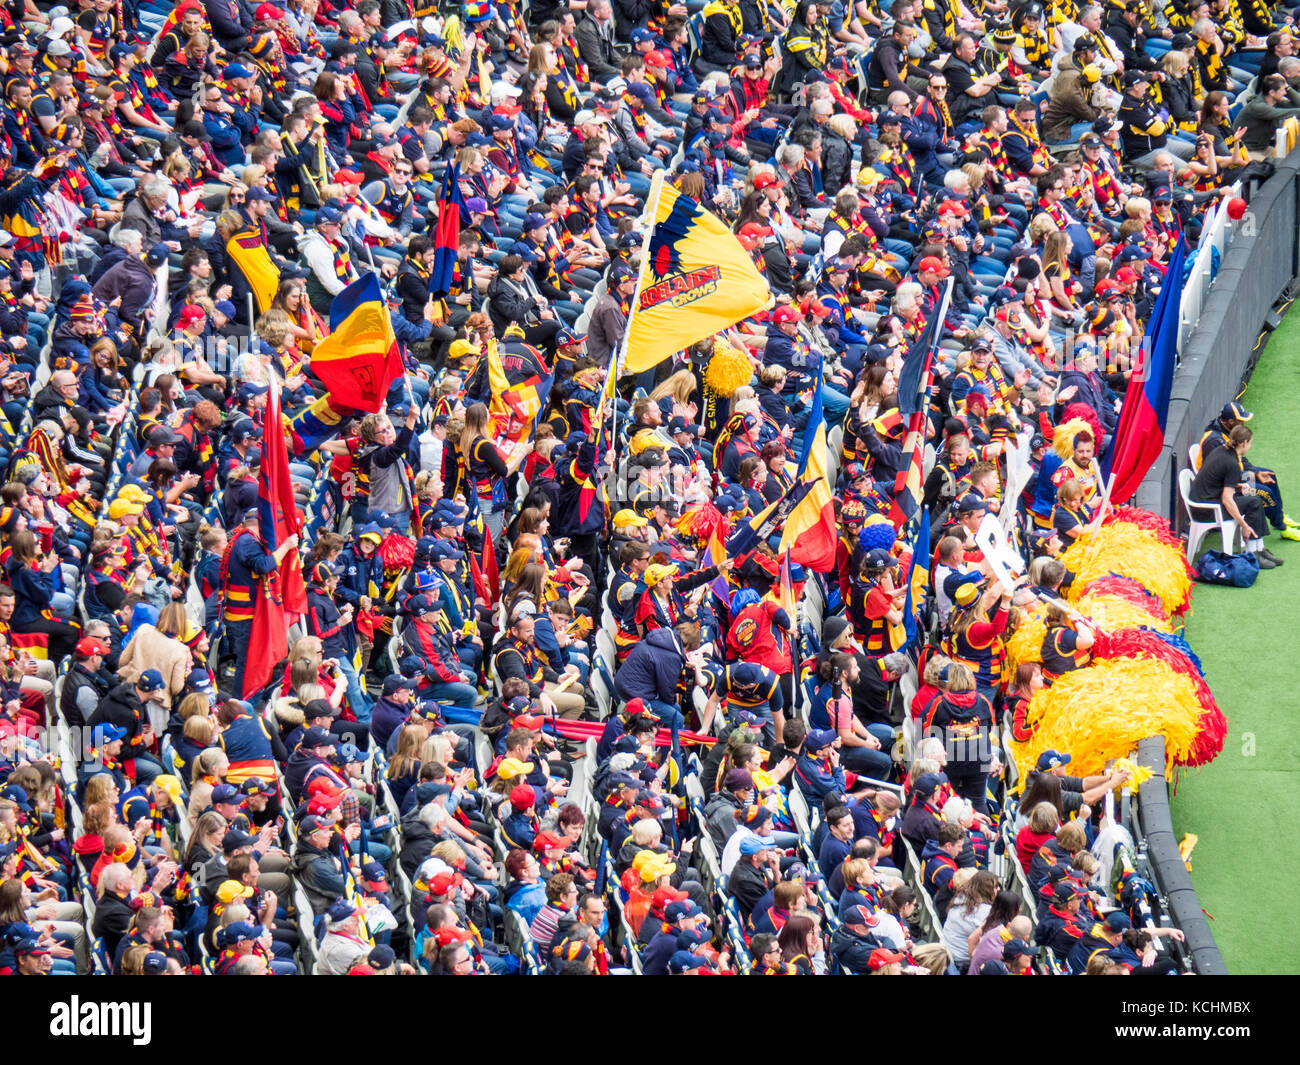 The Adelaide Crows cheer squad cheering at the 2017 Grand Final at the MCG, Melbourne Victoria Australia. - Stock Image